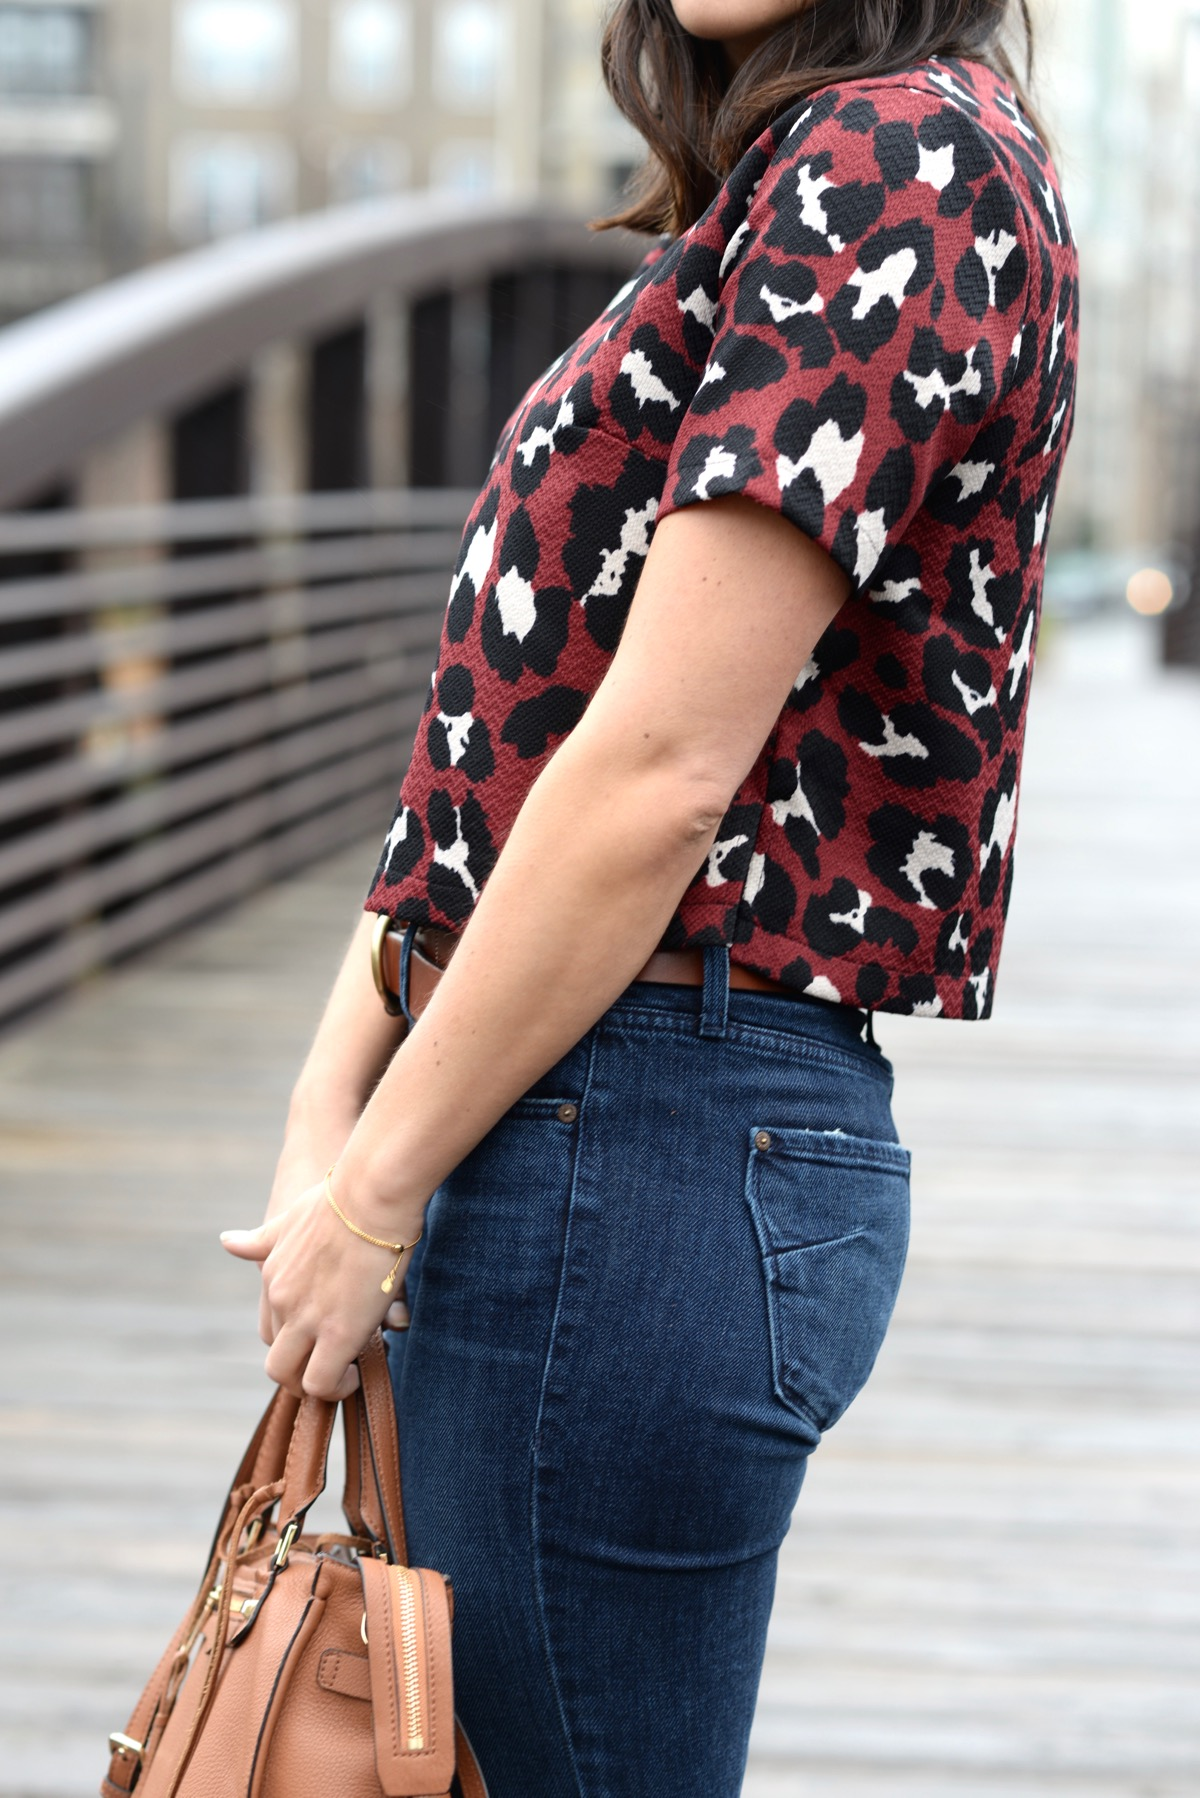 L. Mae Boutique Leopard Crop Top and Wide Leg Jeans - @mystylevita